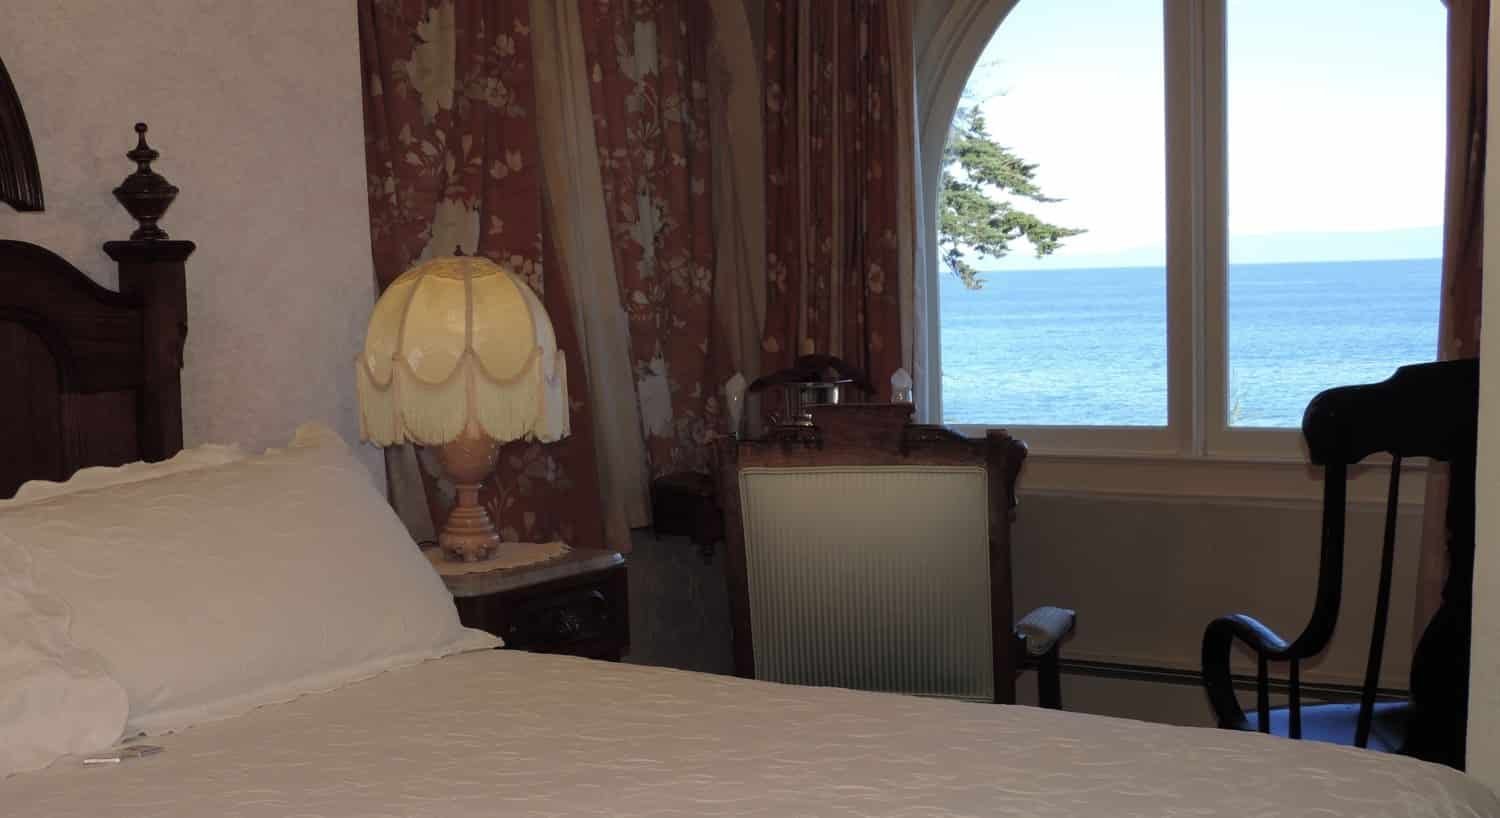 Victoriana guest room with beige papered walls, arched double window overlooking the ocean and carved wooden bed